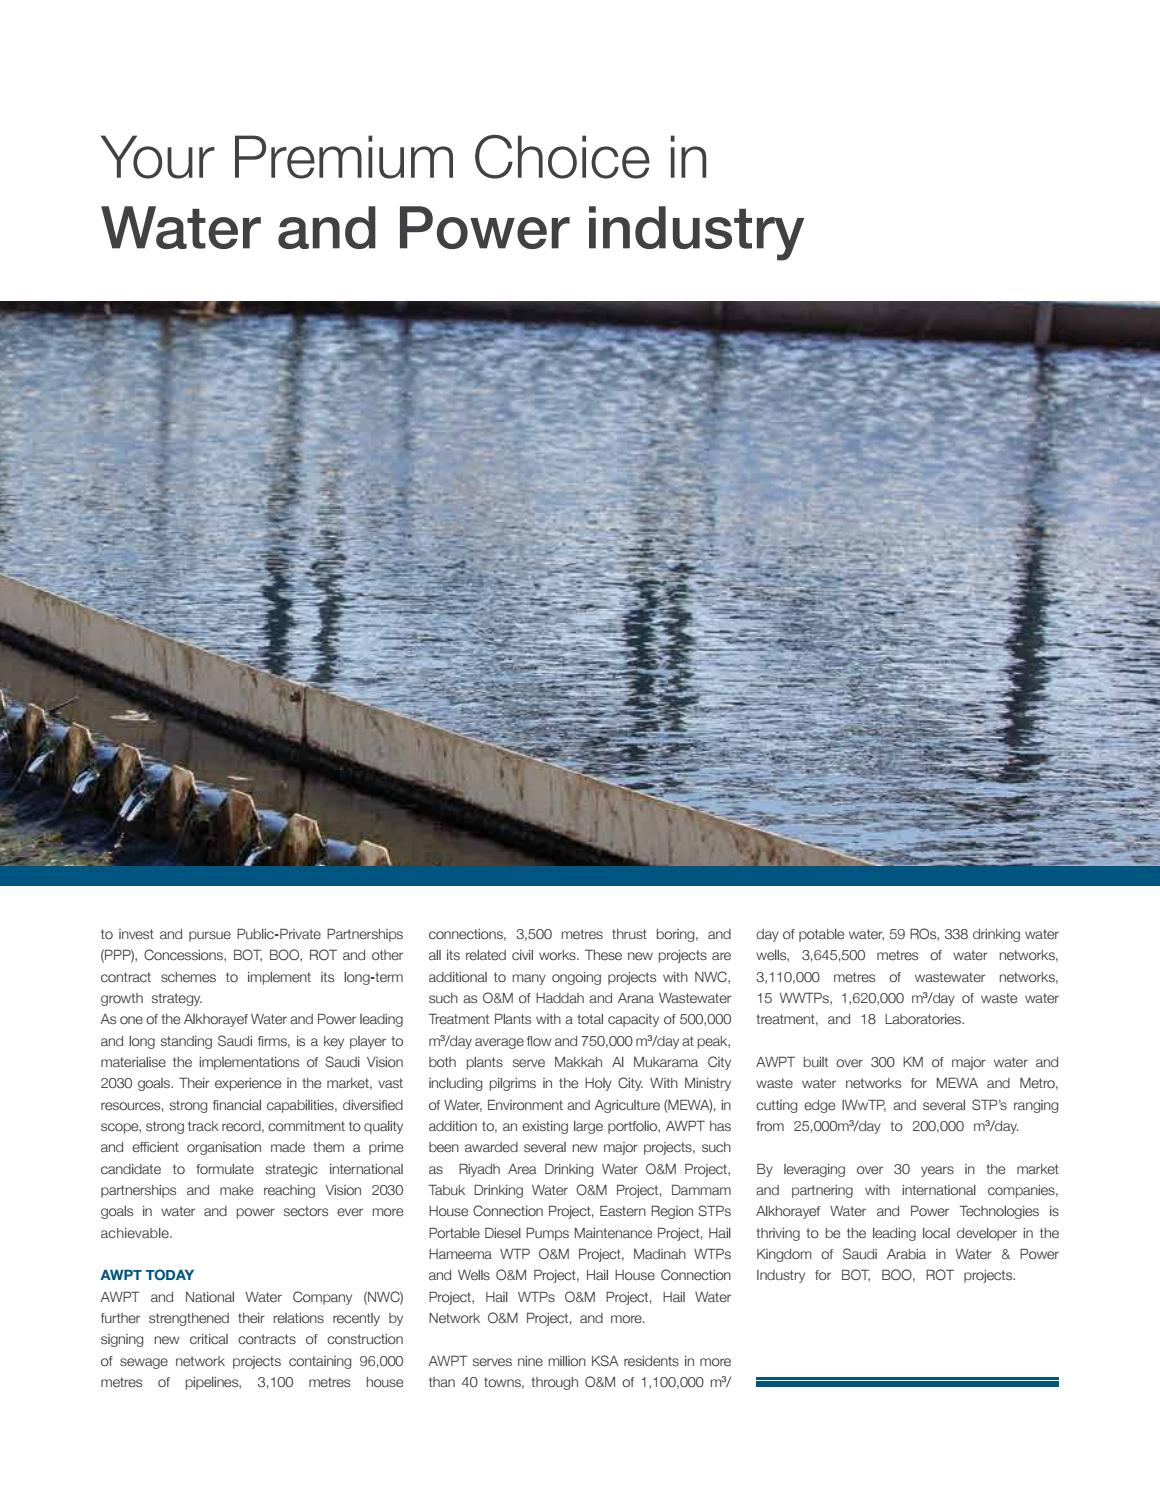 Water and power channel page